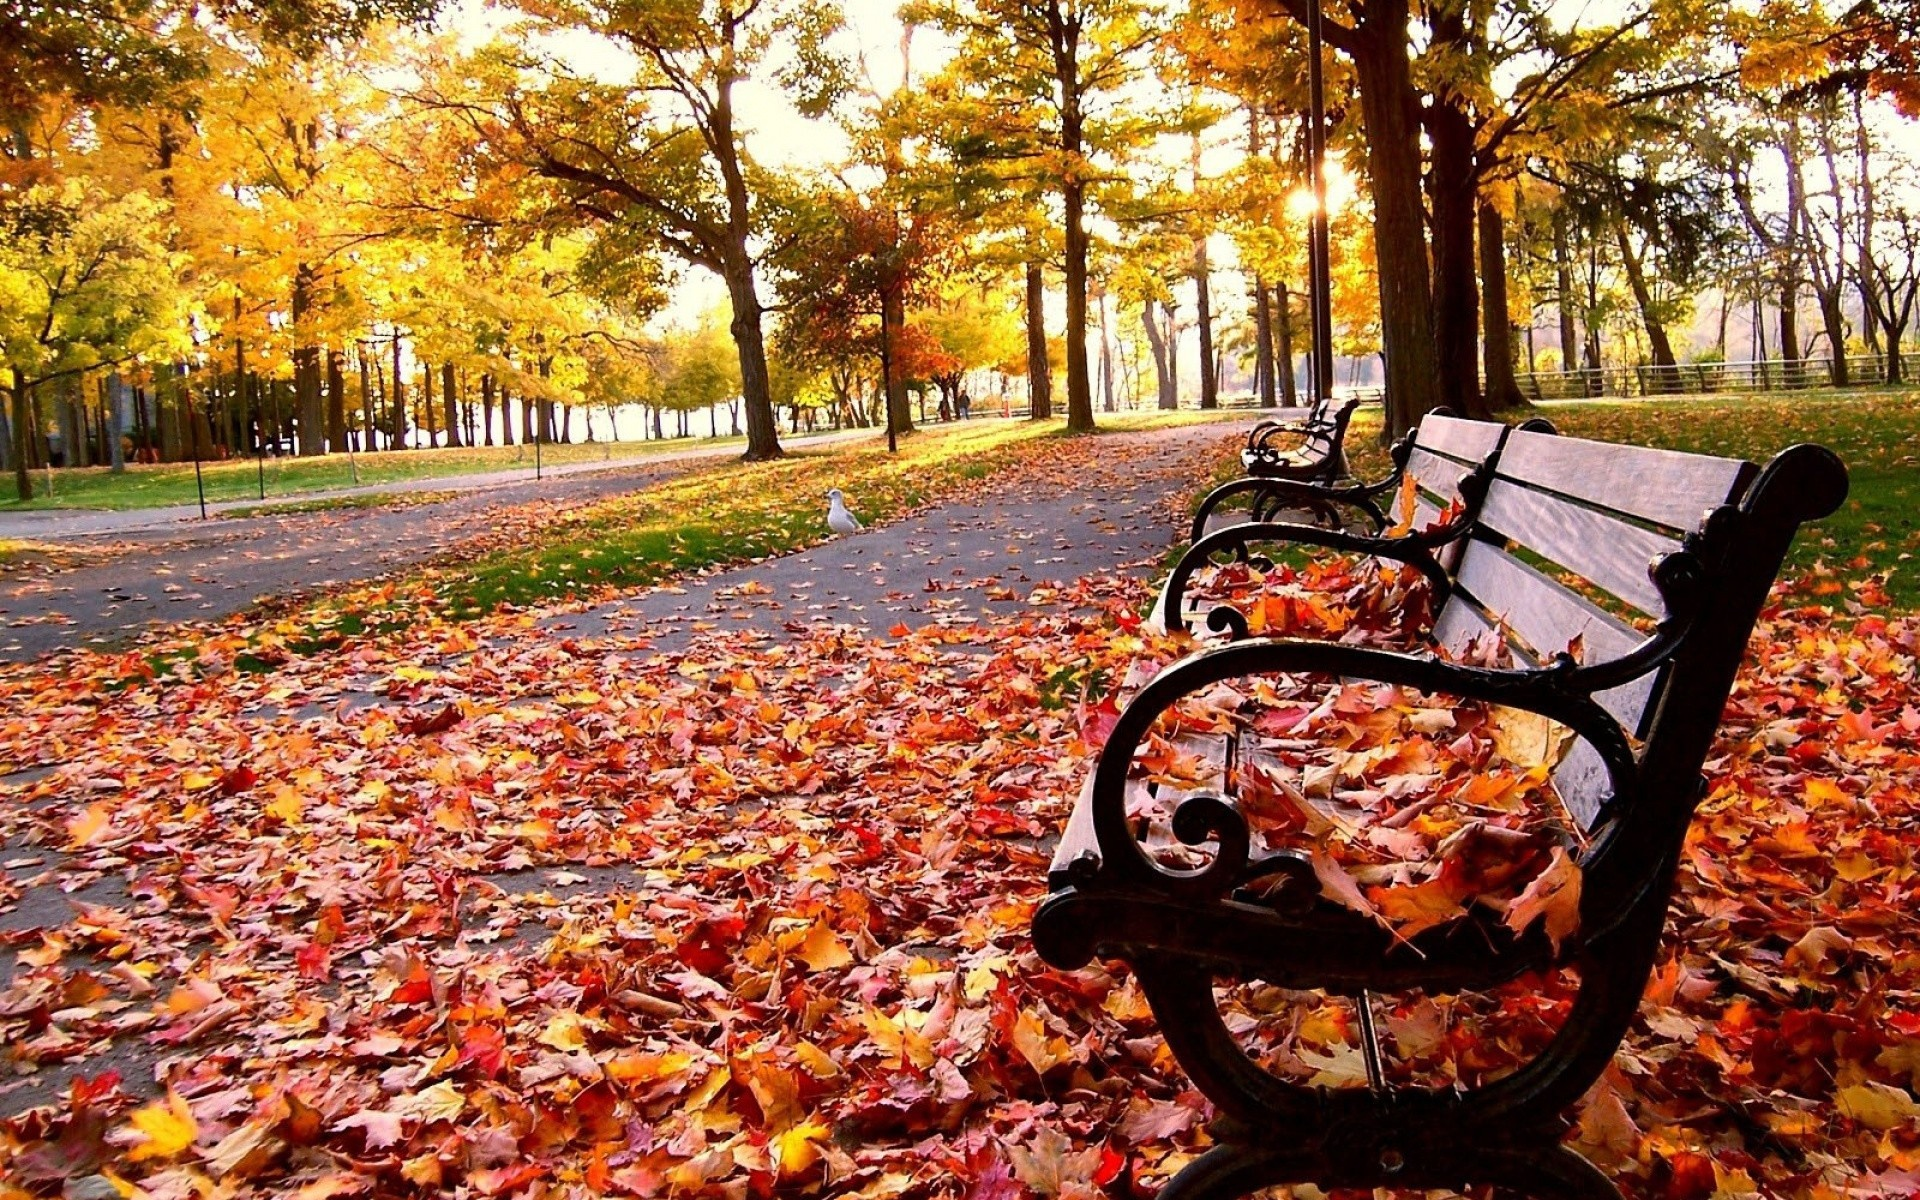 Autumn Wallpaper Leaves Leaf Fall Trees Bench Park Hd 1920x1200px